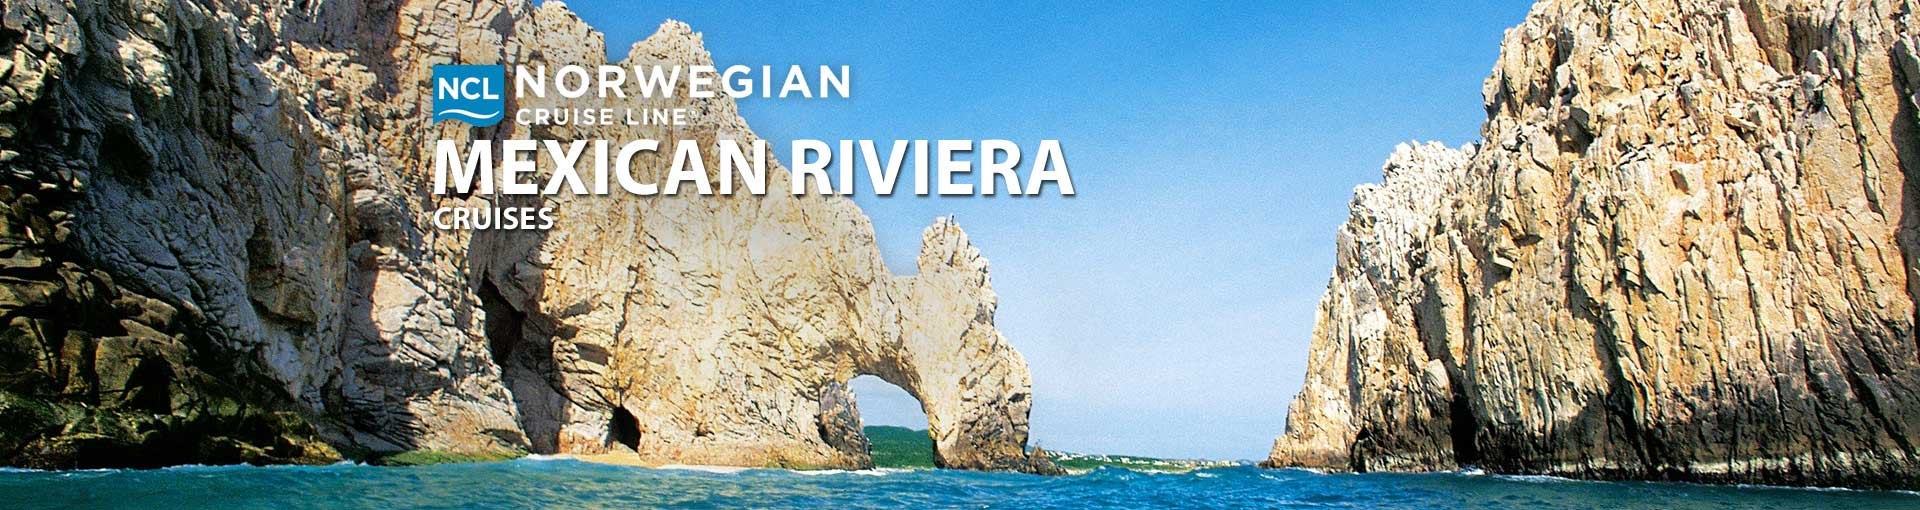 Norwegian Cruise Line Mexican Riviera Cruises